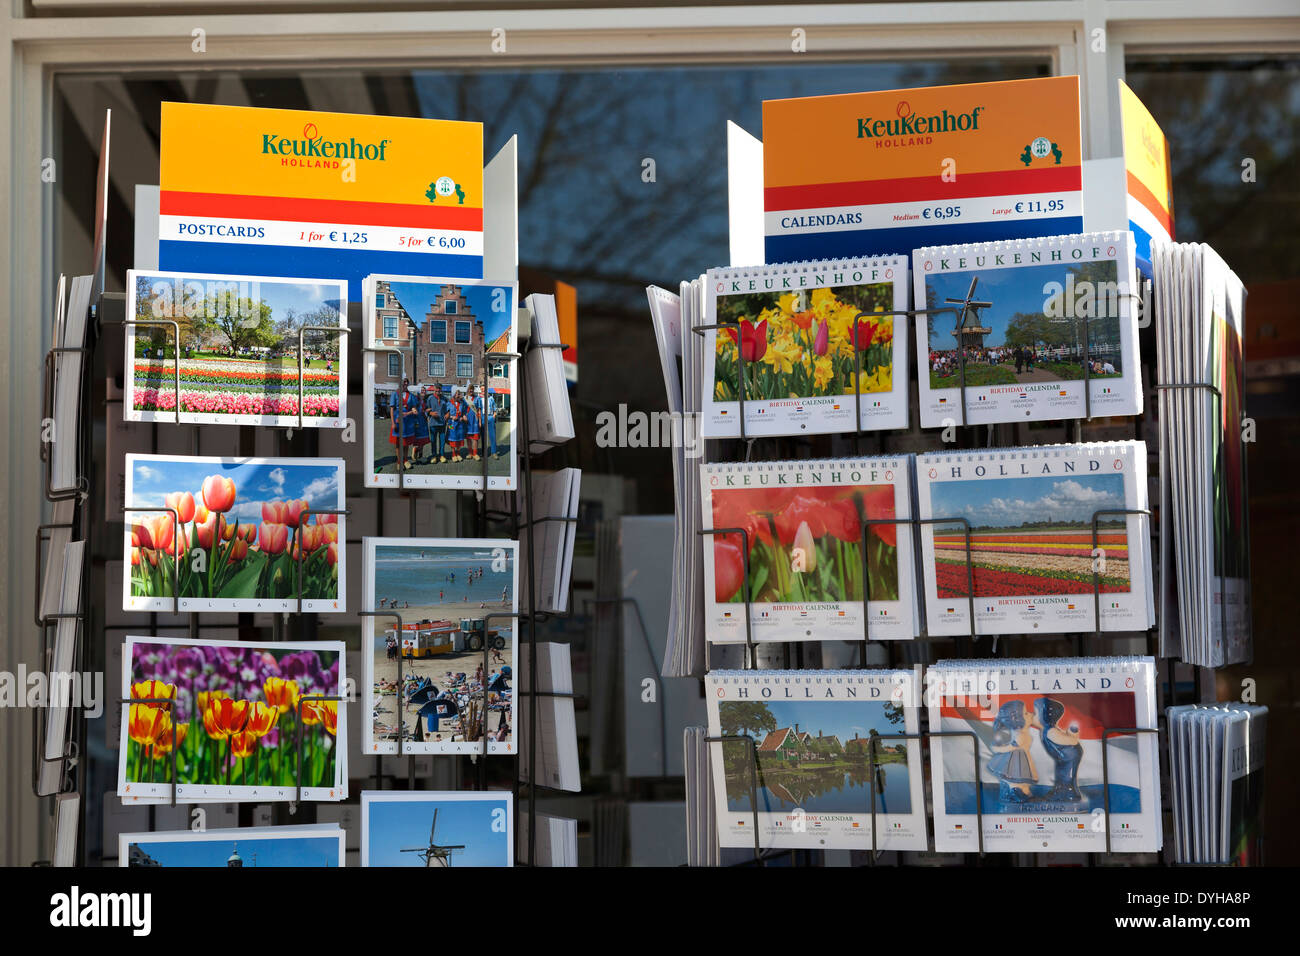 Postcars and calendars at the Keukenhof in Lisse, Holland - Stock Image